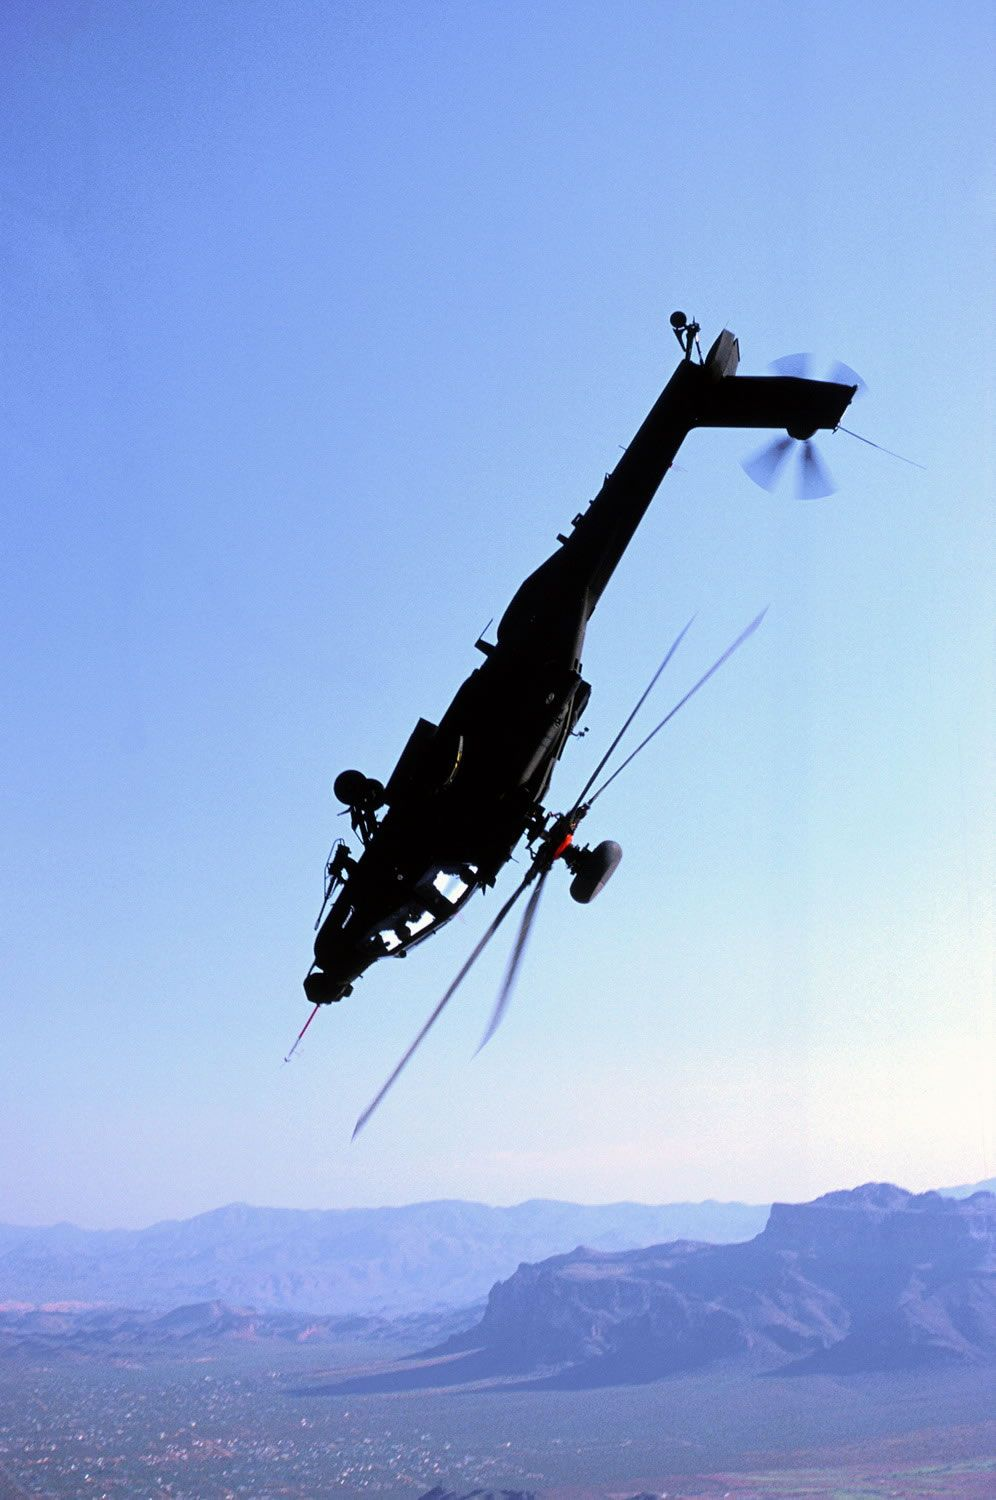 hight resolution of ah 64 apache doing a flip which is no easy task for a helicopter